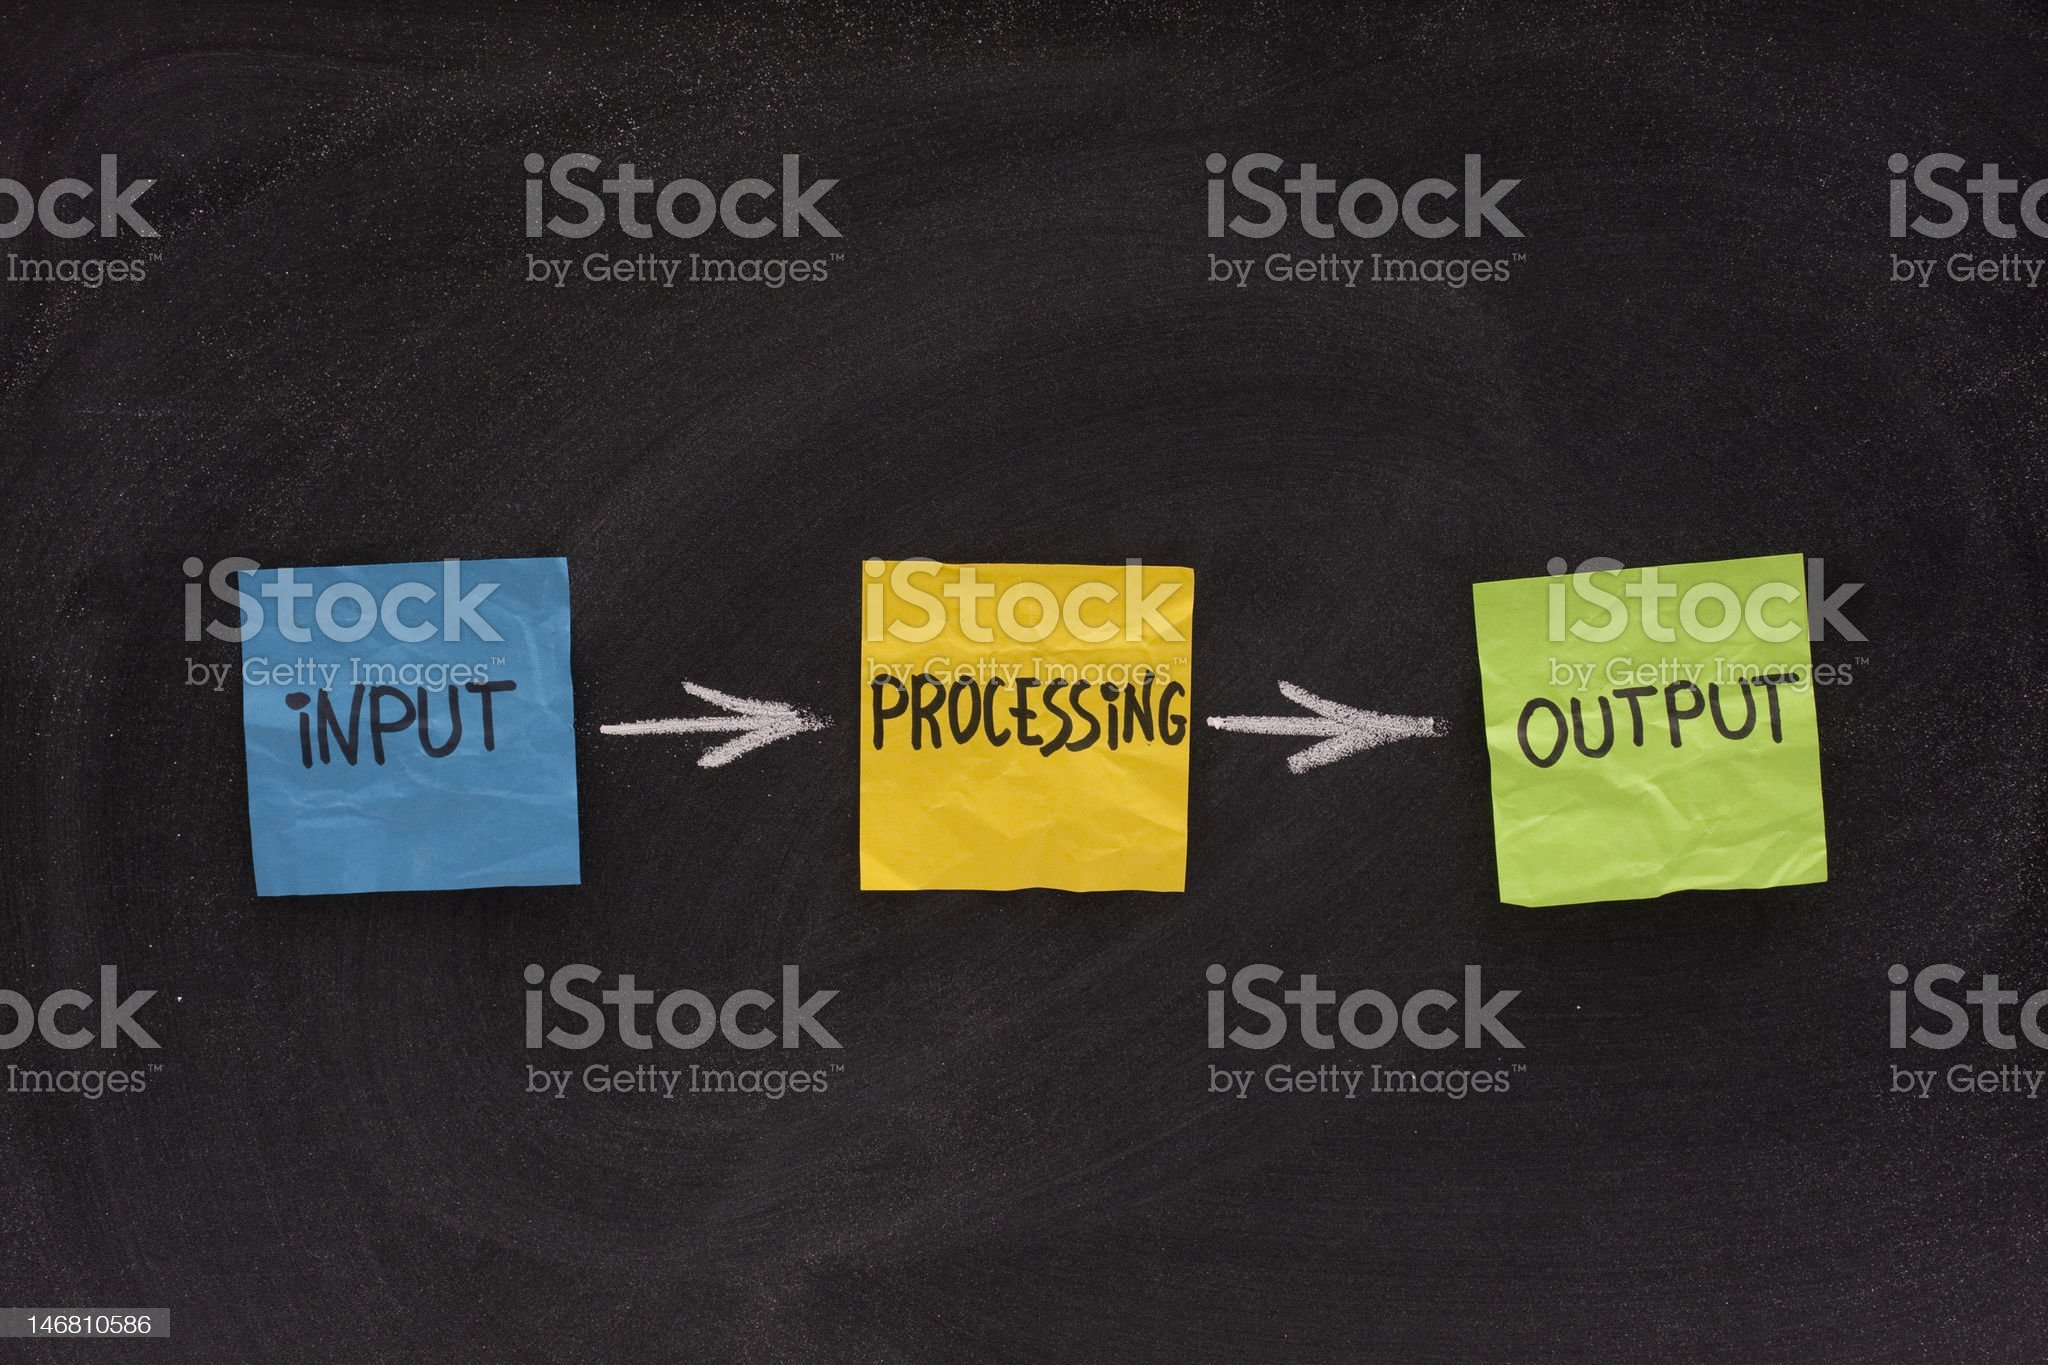 input, processing, output - software system royalty-free stock photo